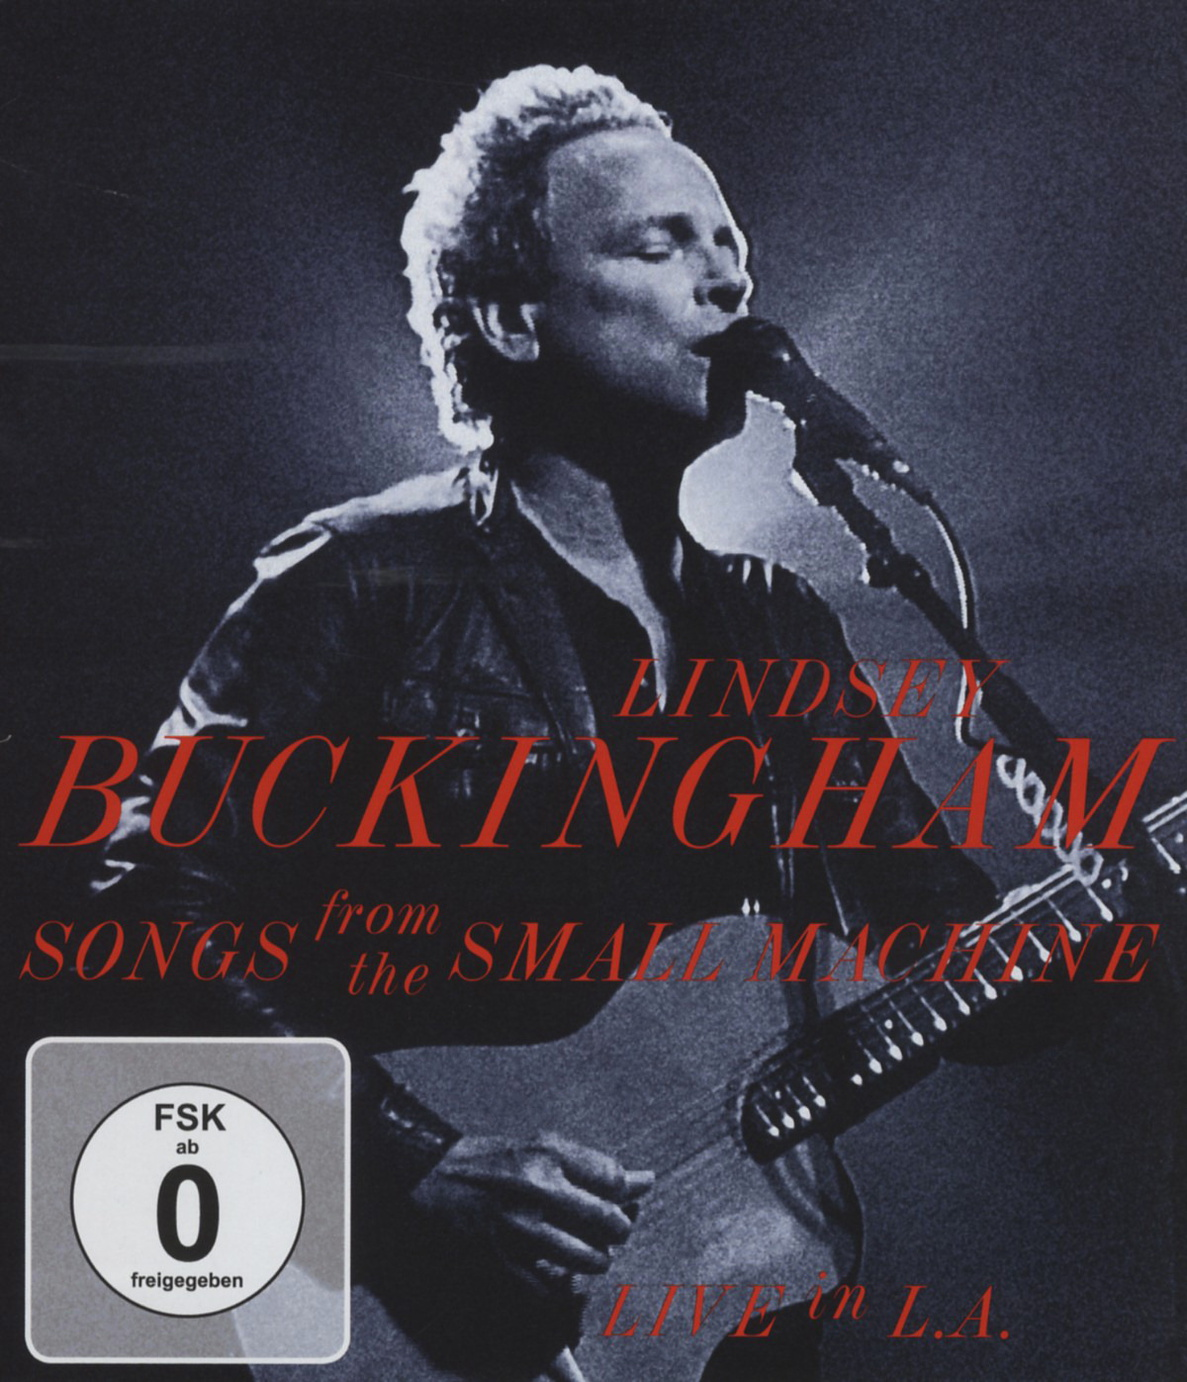 Lindsey Buckingham - Songs from the Small Machi...